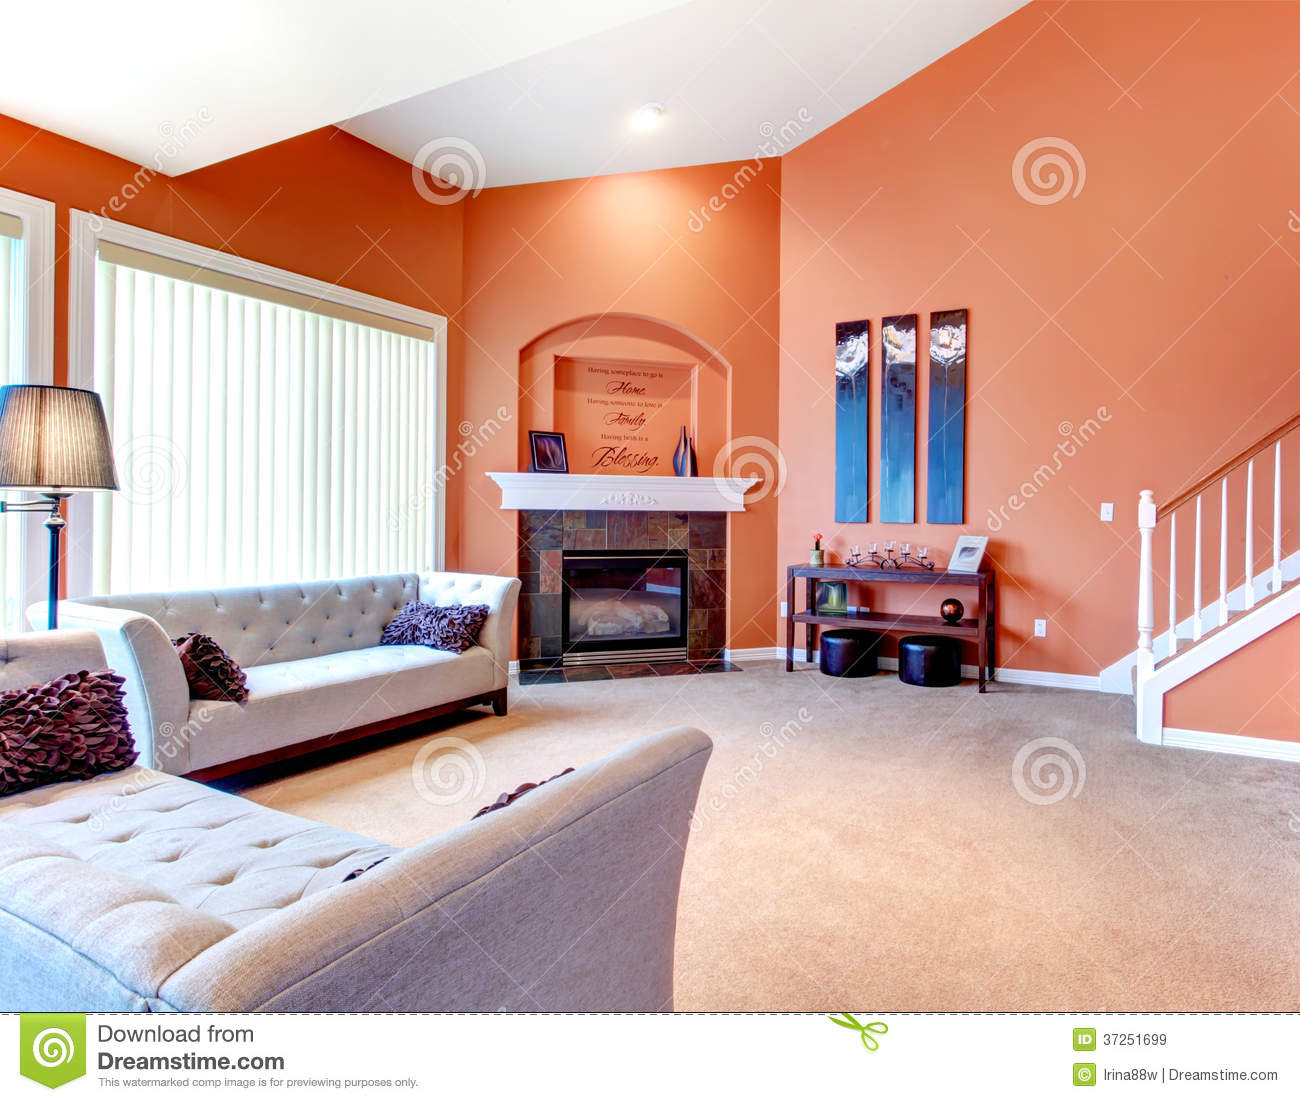 grey white orange living room beige carpet wonderful with classic sofa dark stoned cozy floor wood stairs furniture and fireplace decorated table candles wall handmade art